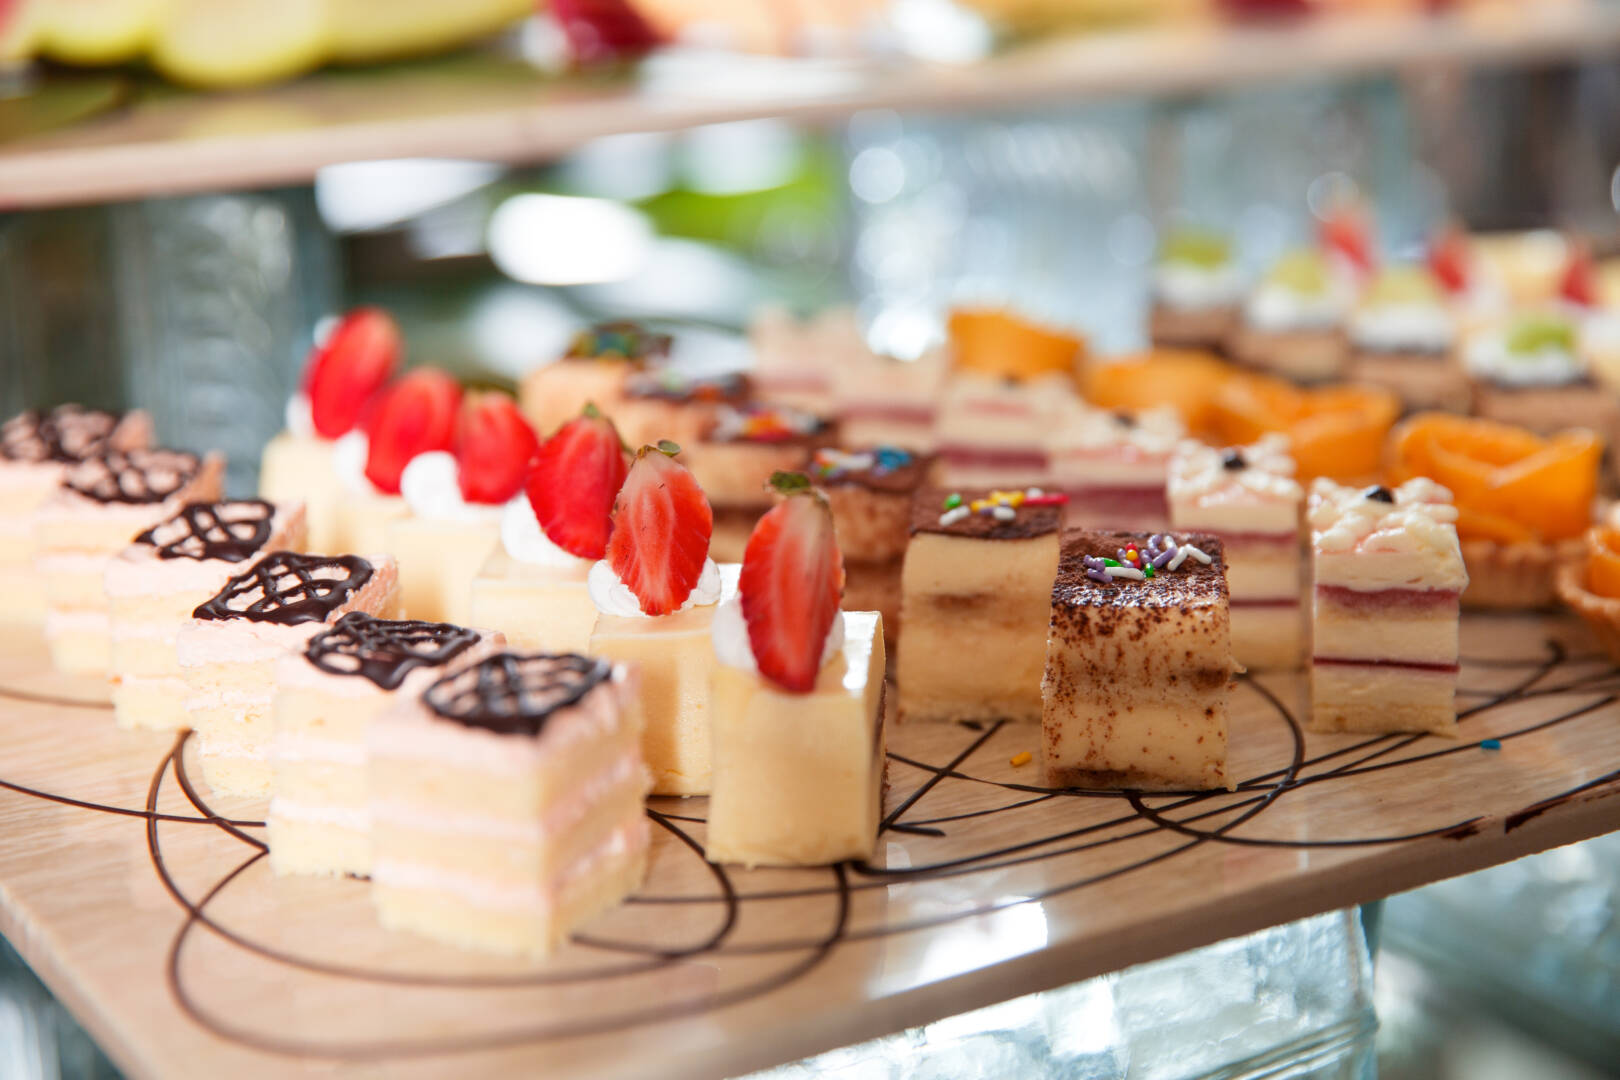 Delicious mini cakes with cream, chocolate and strawberries on buffet table. Catering concept